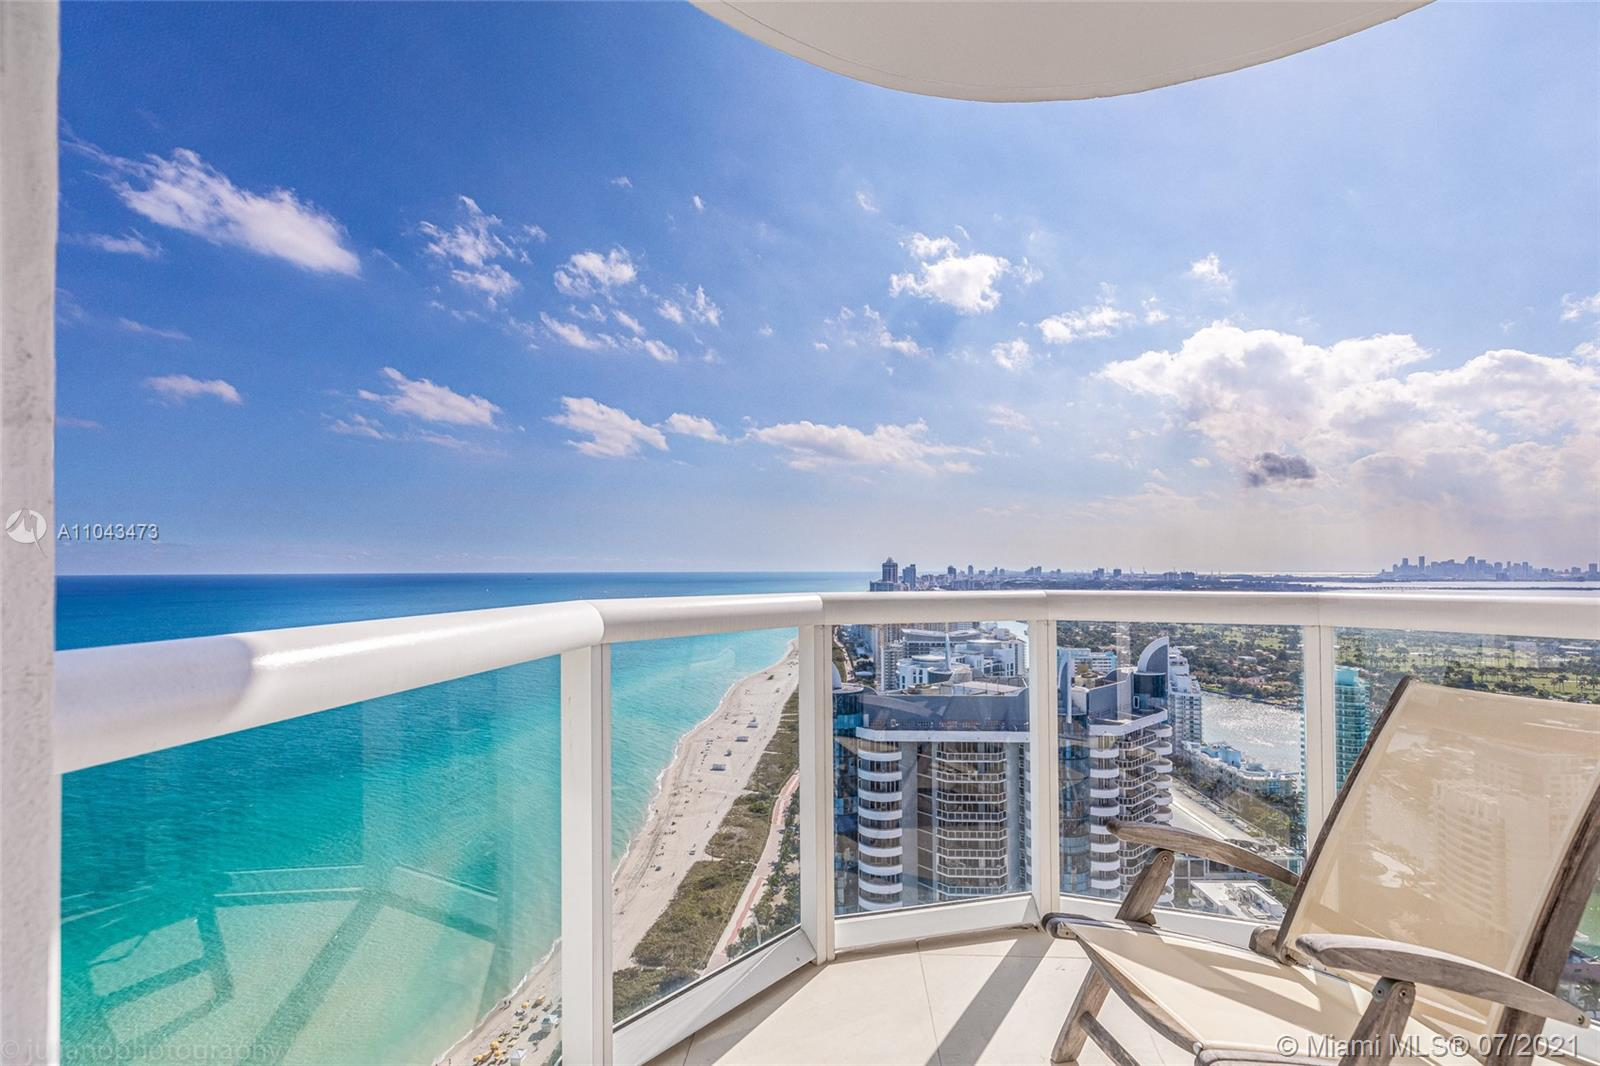 Breathtaking unobstructed views from the 42nd floor!!! Floor to ceiling sliding glass doors and windows in every room for easy access to the balcony and to enjoy views of the downtown skyline, Biscayne Bay, and the Atlantic ocean. Beachfront condo with direct access to the beach. Immaculate marble flooring all throughout. The kitchen is equipped with top-of-the-line stainless steel appliances and the master bath features a jacuzzi with separate shower and double vanity. Building amenities include a gym, sauna, steam room, heated pool, tennis court, beach service, attended lobby, 24-hour valet parking, and much more! A Must see!